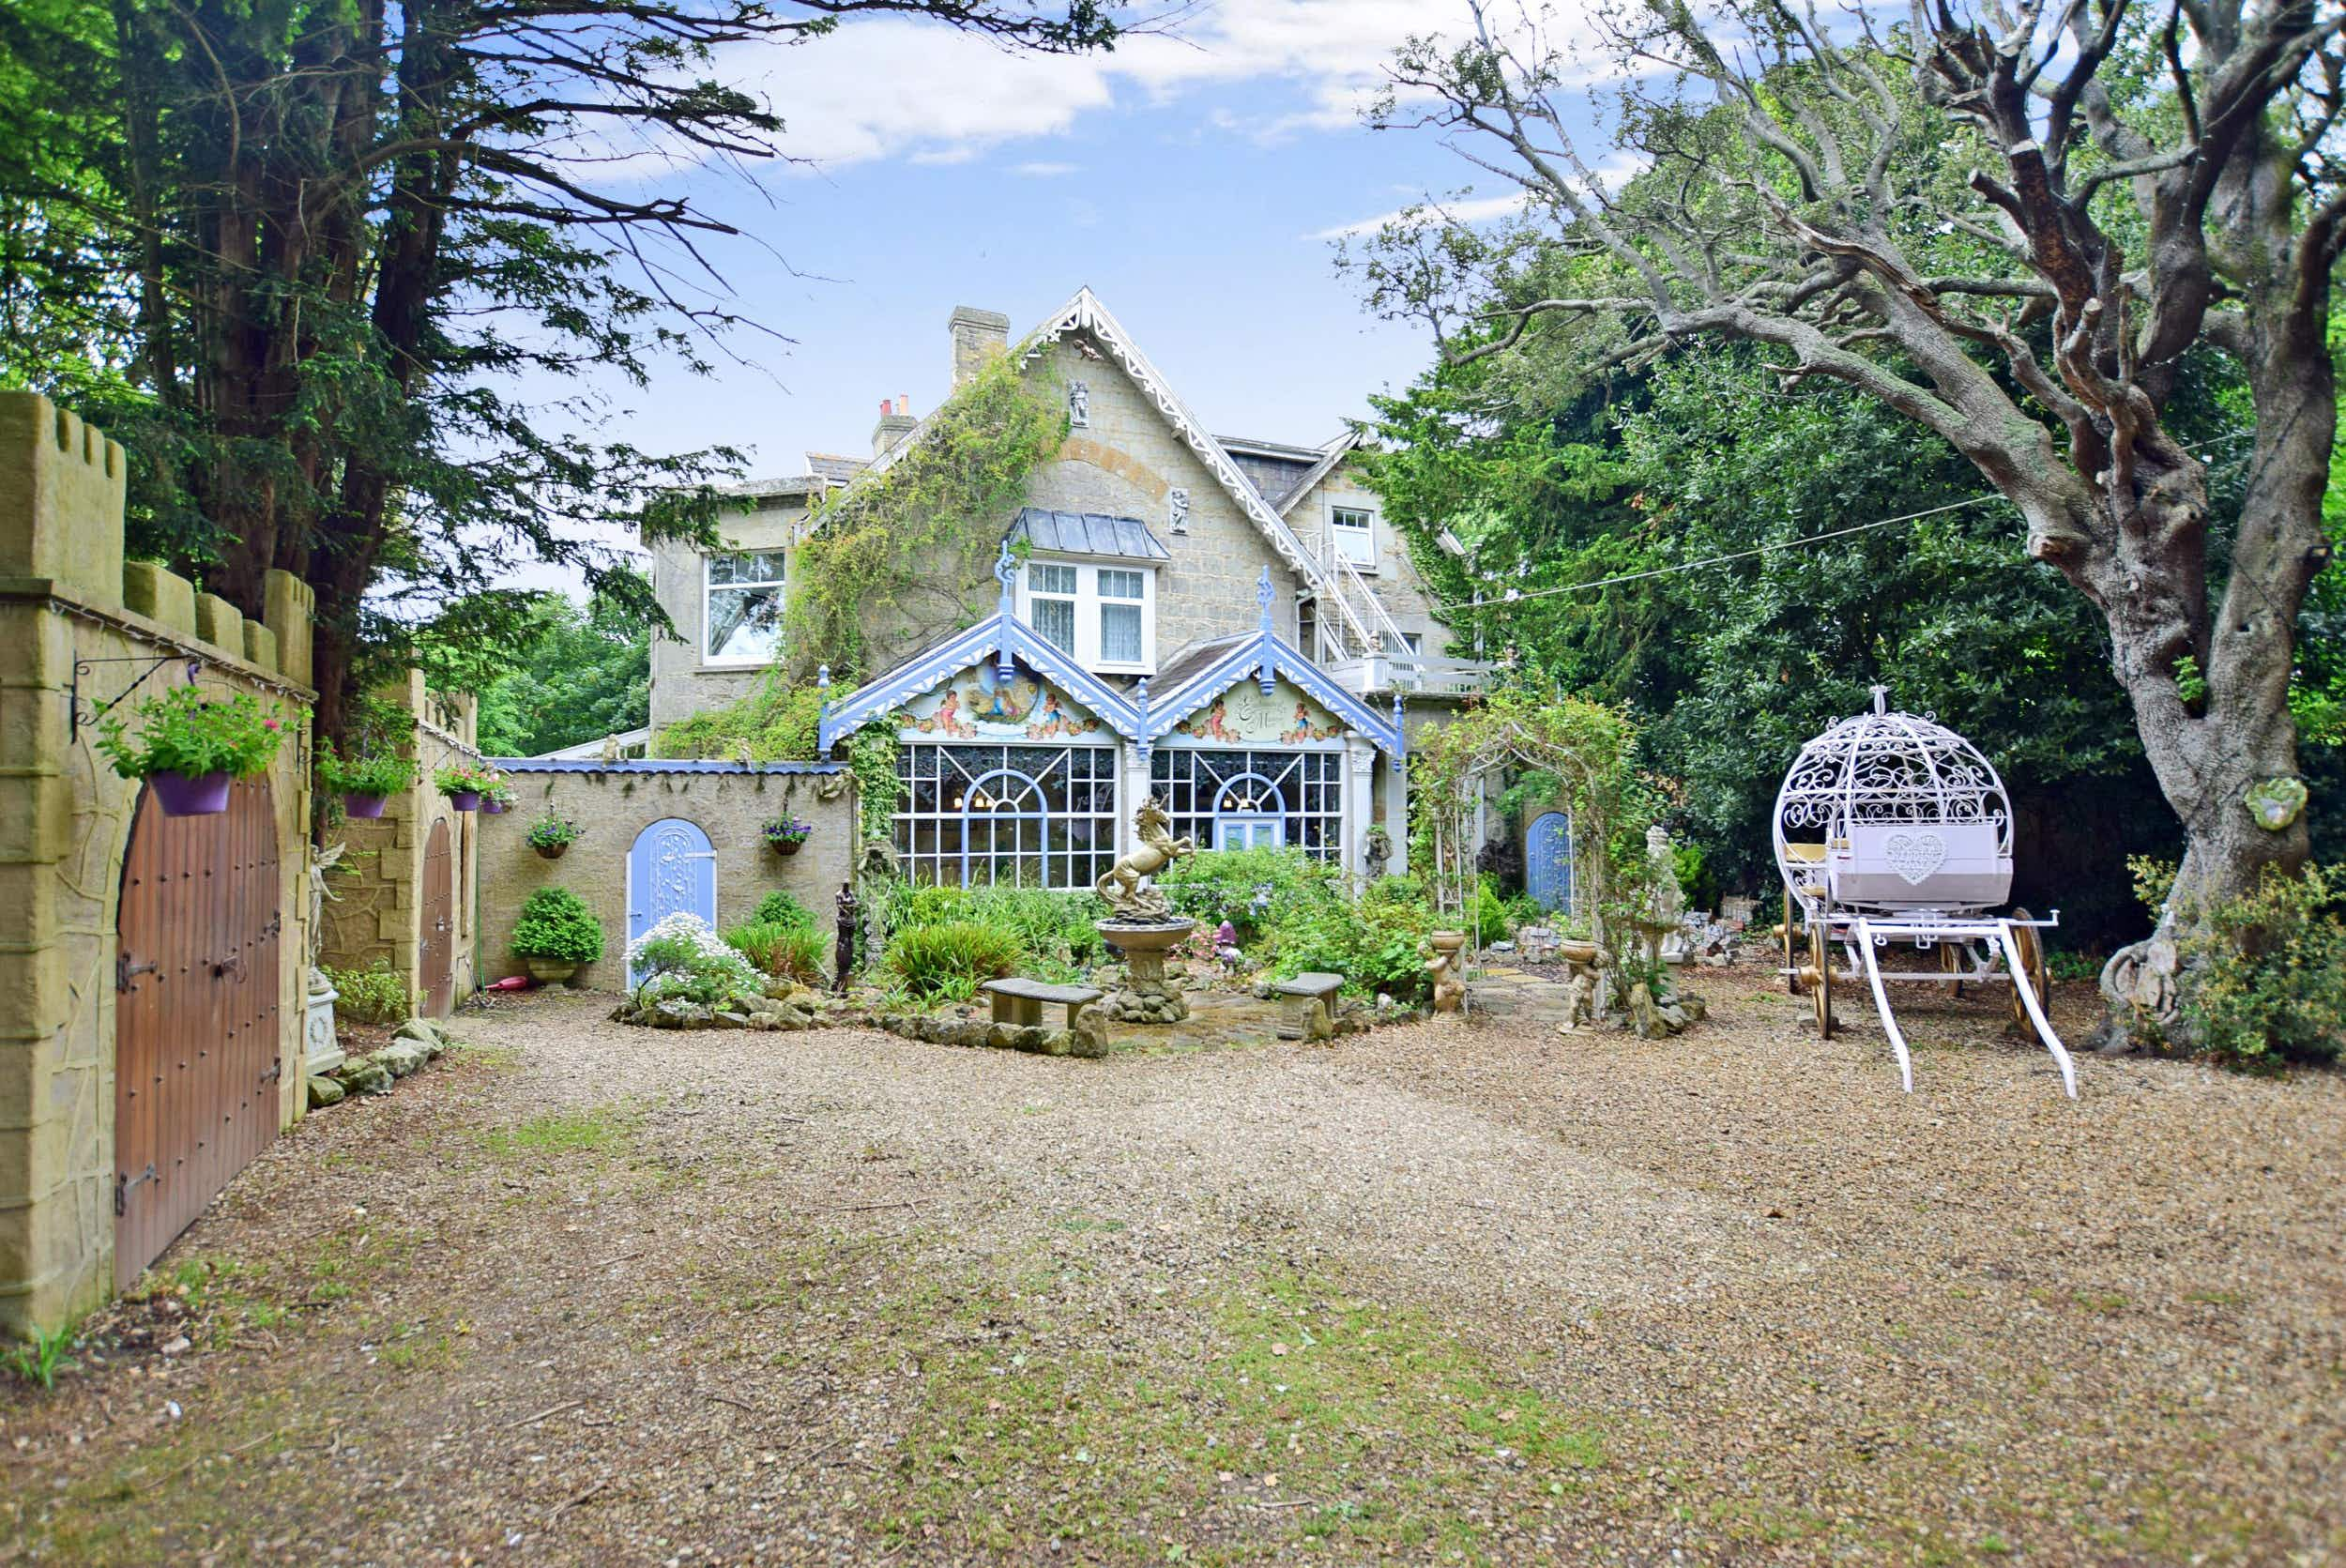 This stunning manor for sale in the Isle of Wight is straight out of a fairy tale